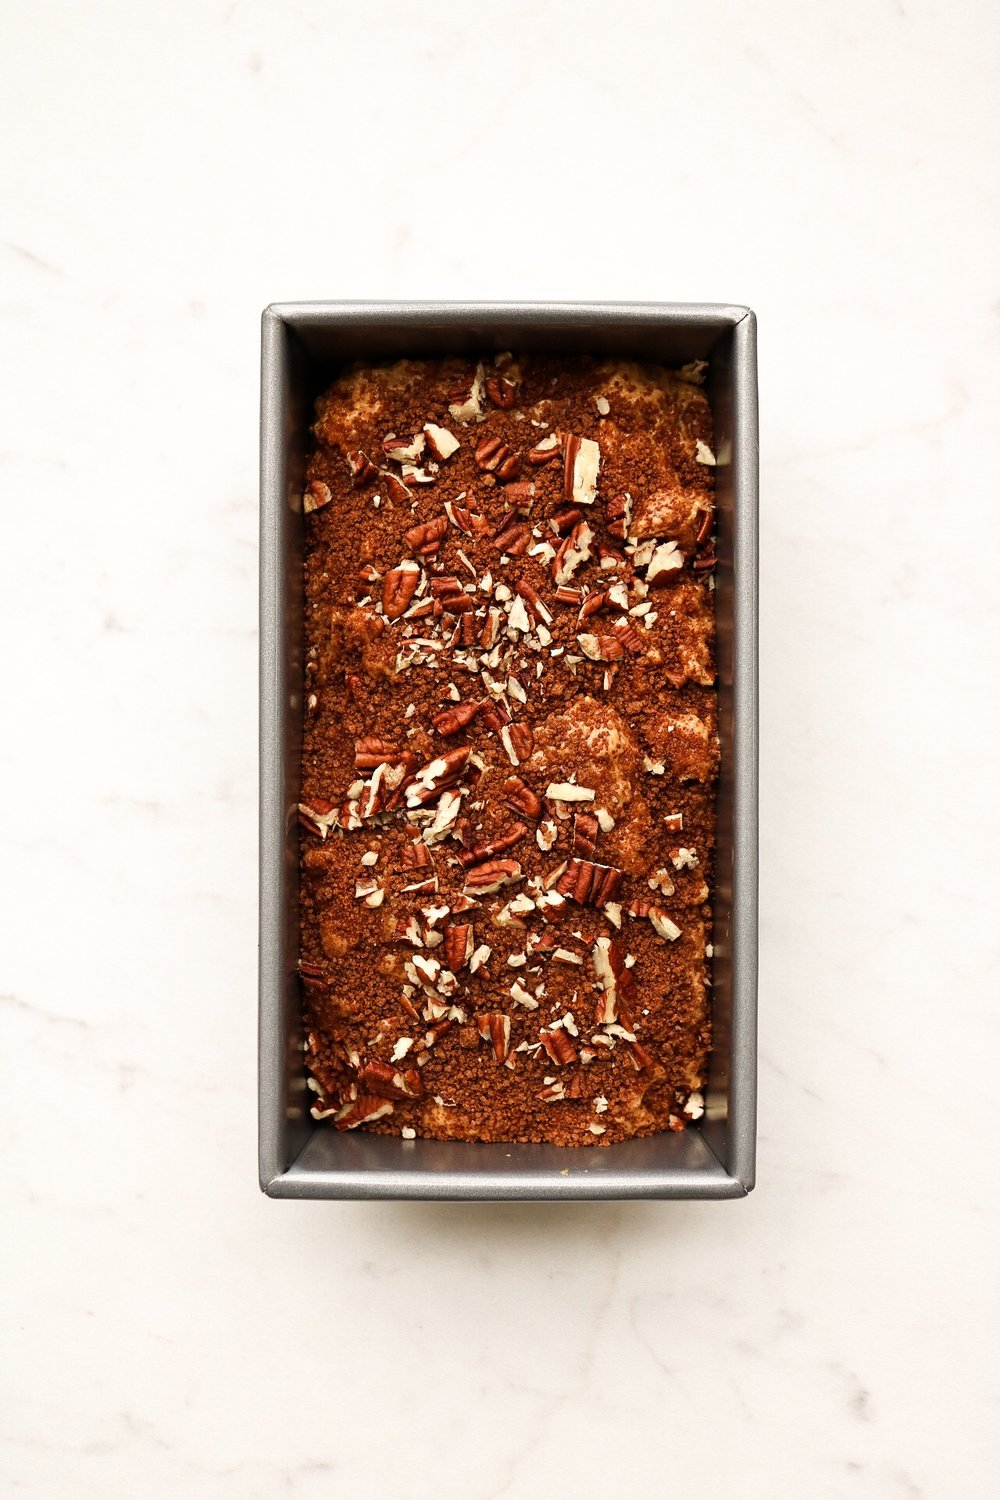 The batter after sprinkling the top with sugar + cinnamon + more pecans